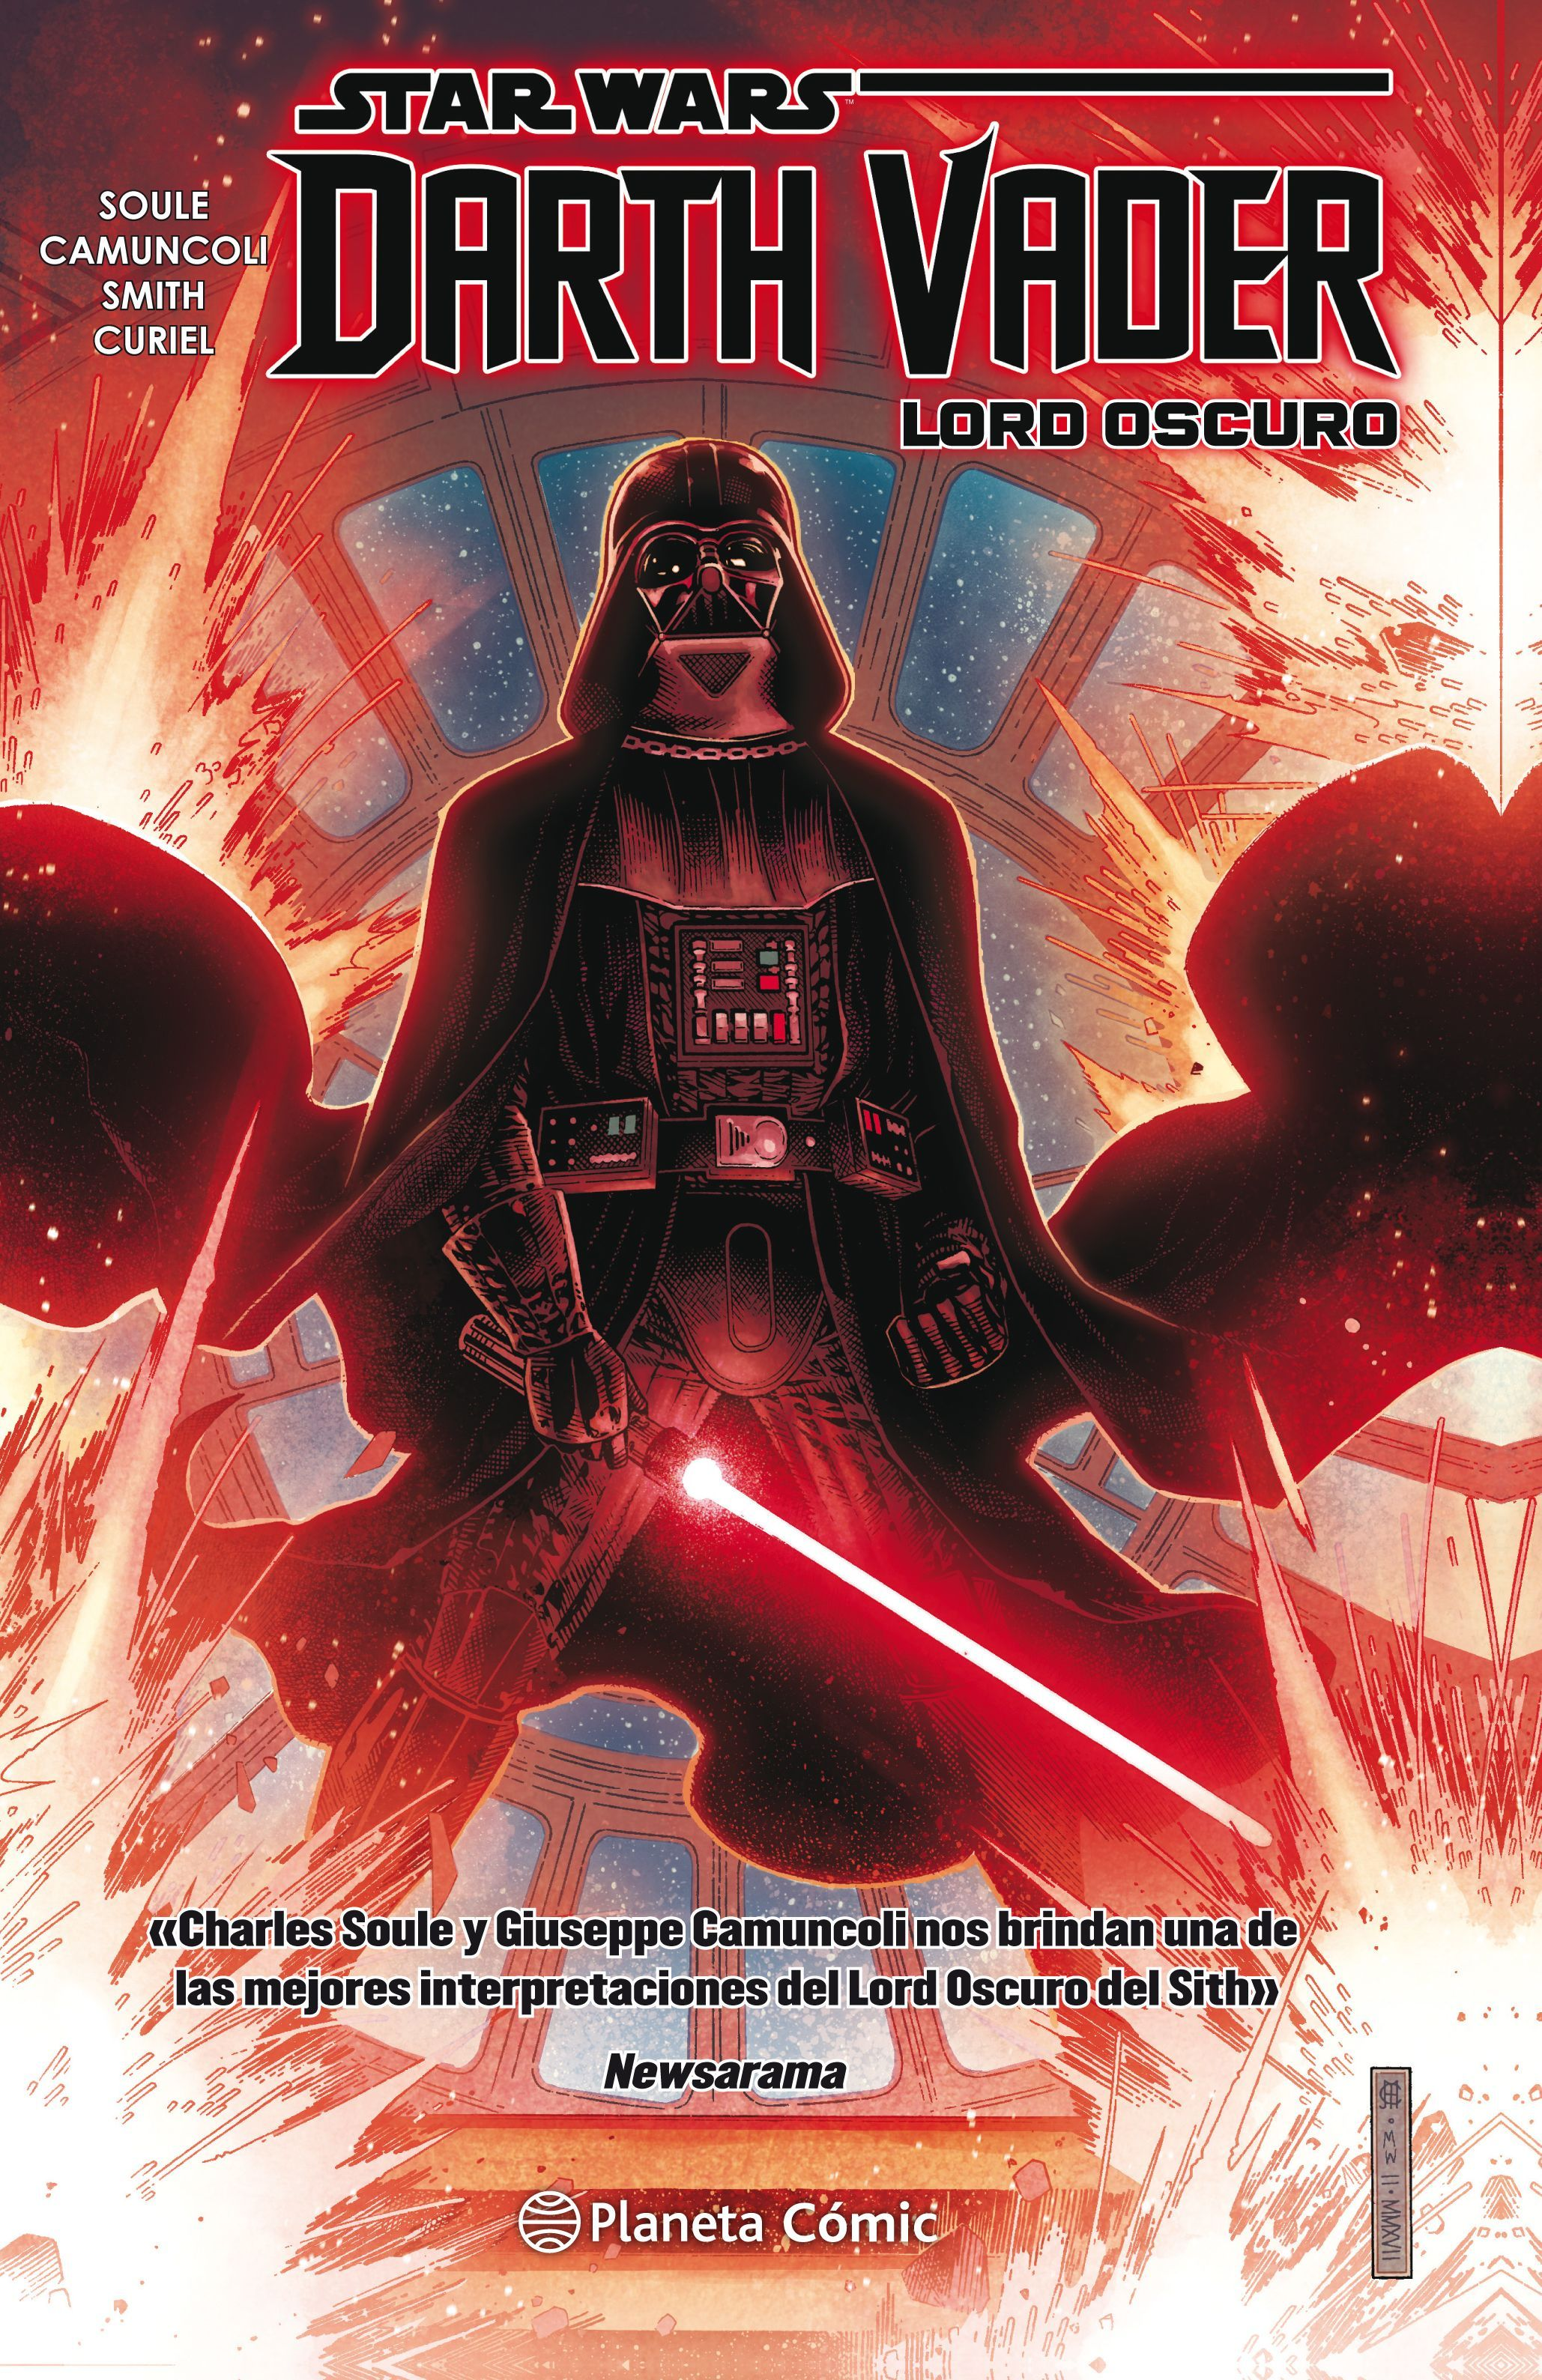 STAR WARS DARTH VADER LORD OSCURO TOMO RECOPILATORIO Nº 01